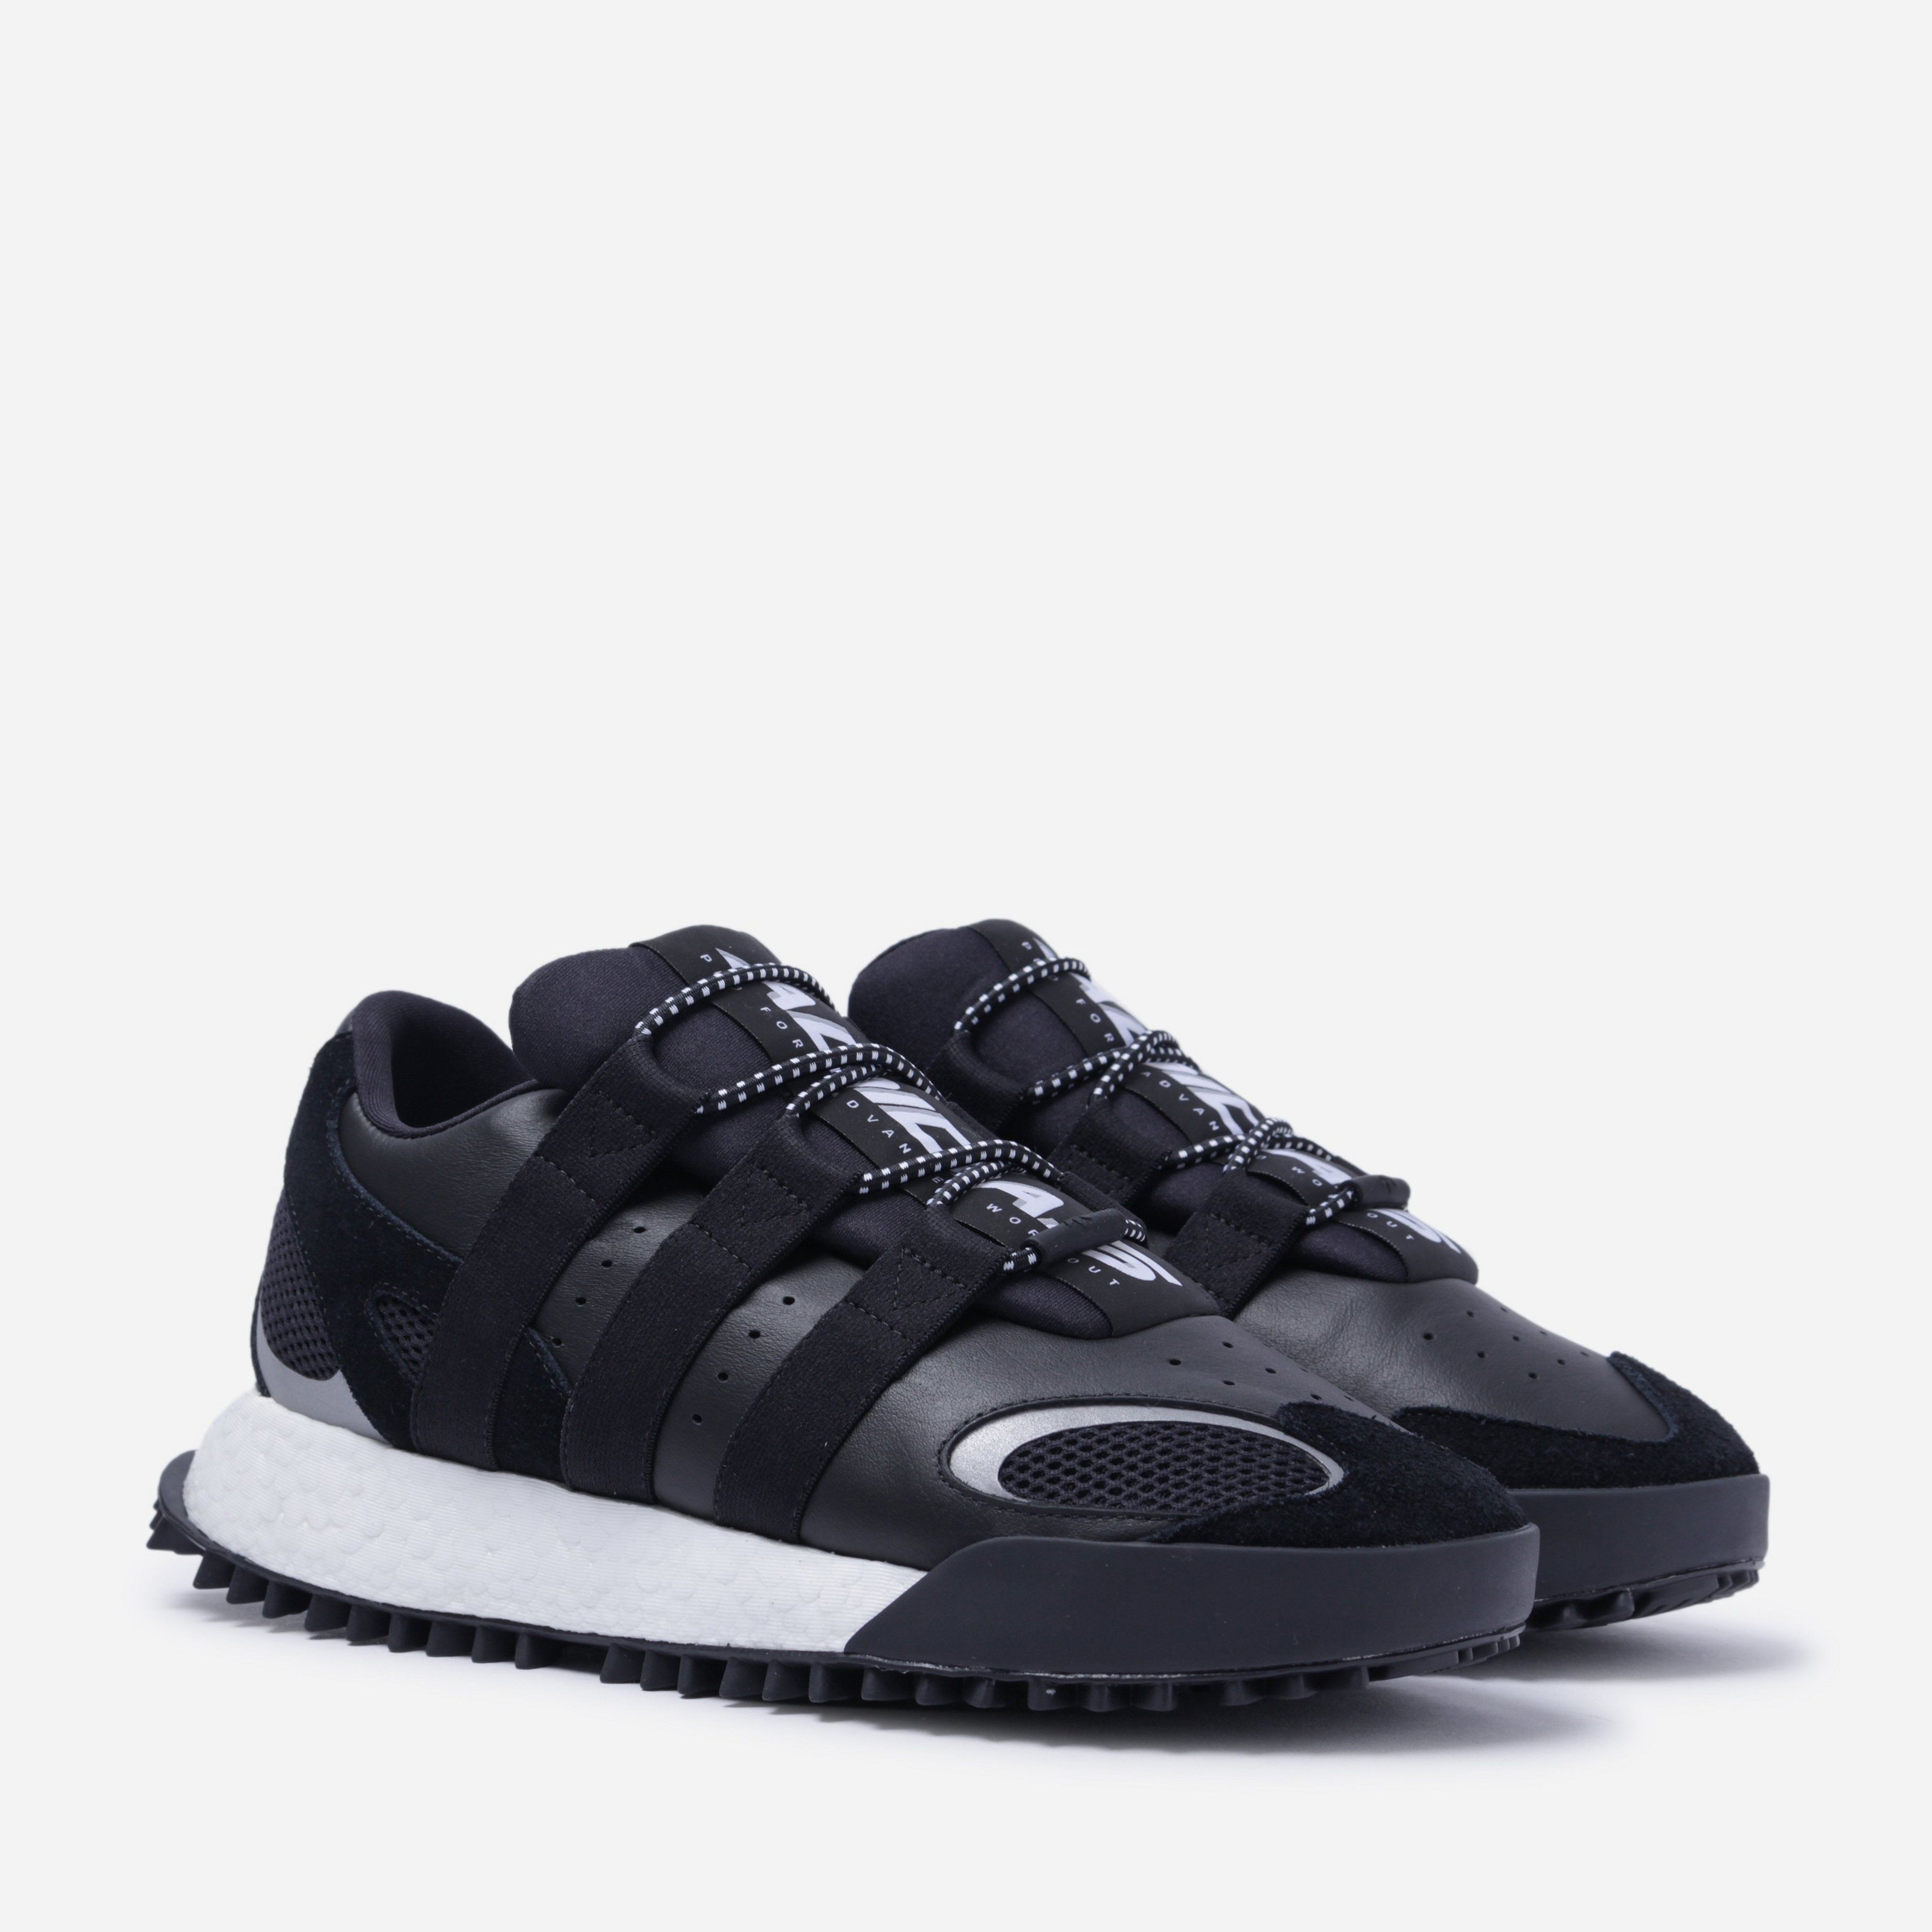 meet 48665 a5f1b adidas Originals by Alexander Wang Wangbody Run   The Hip Store